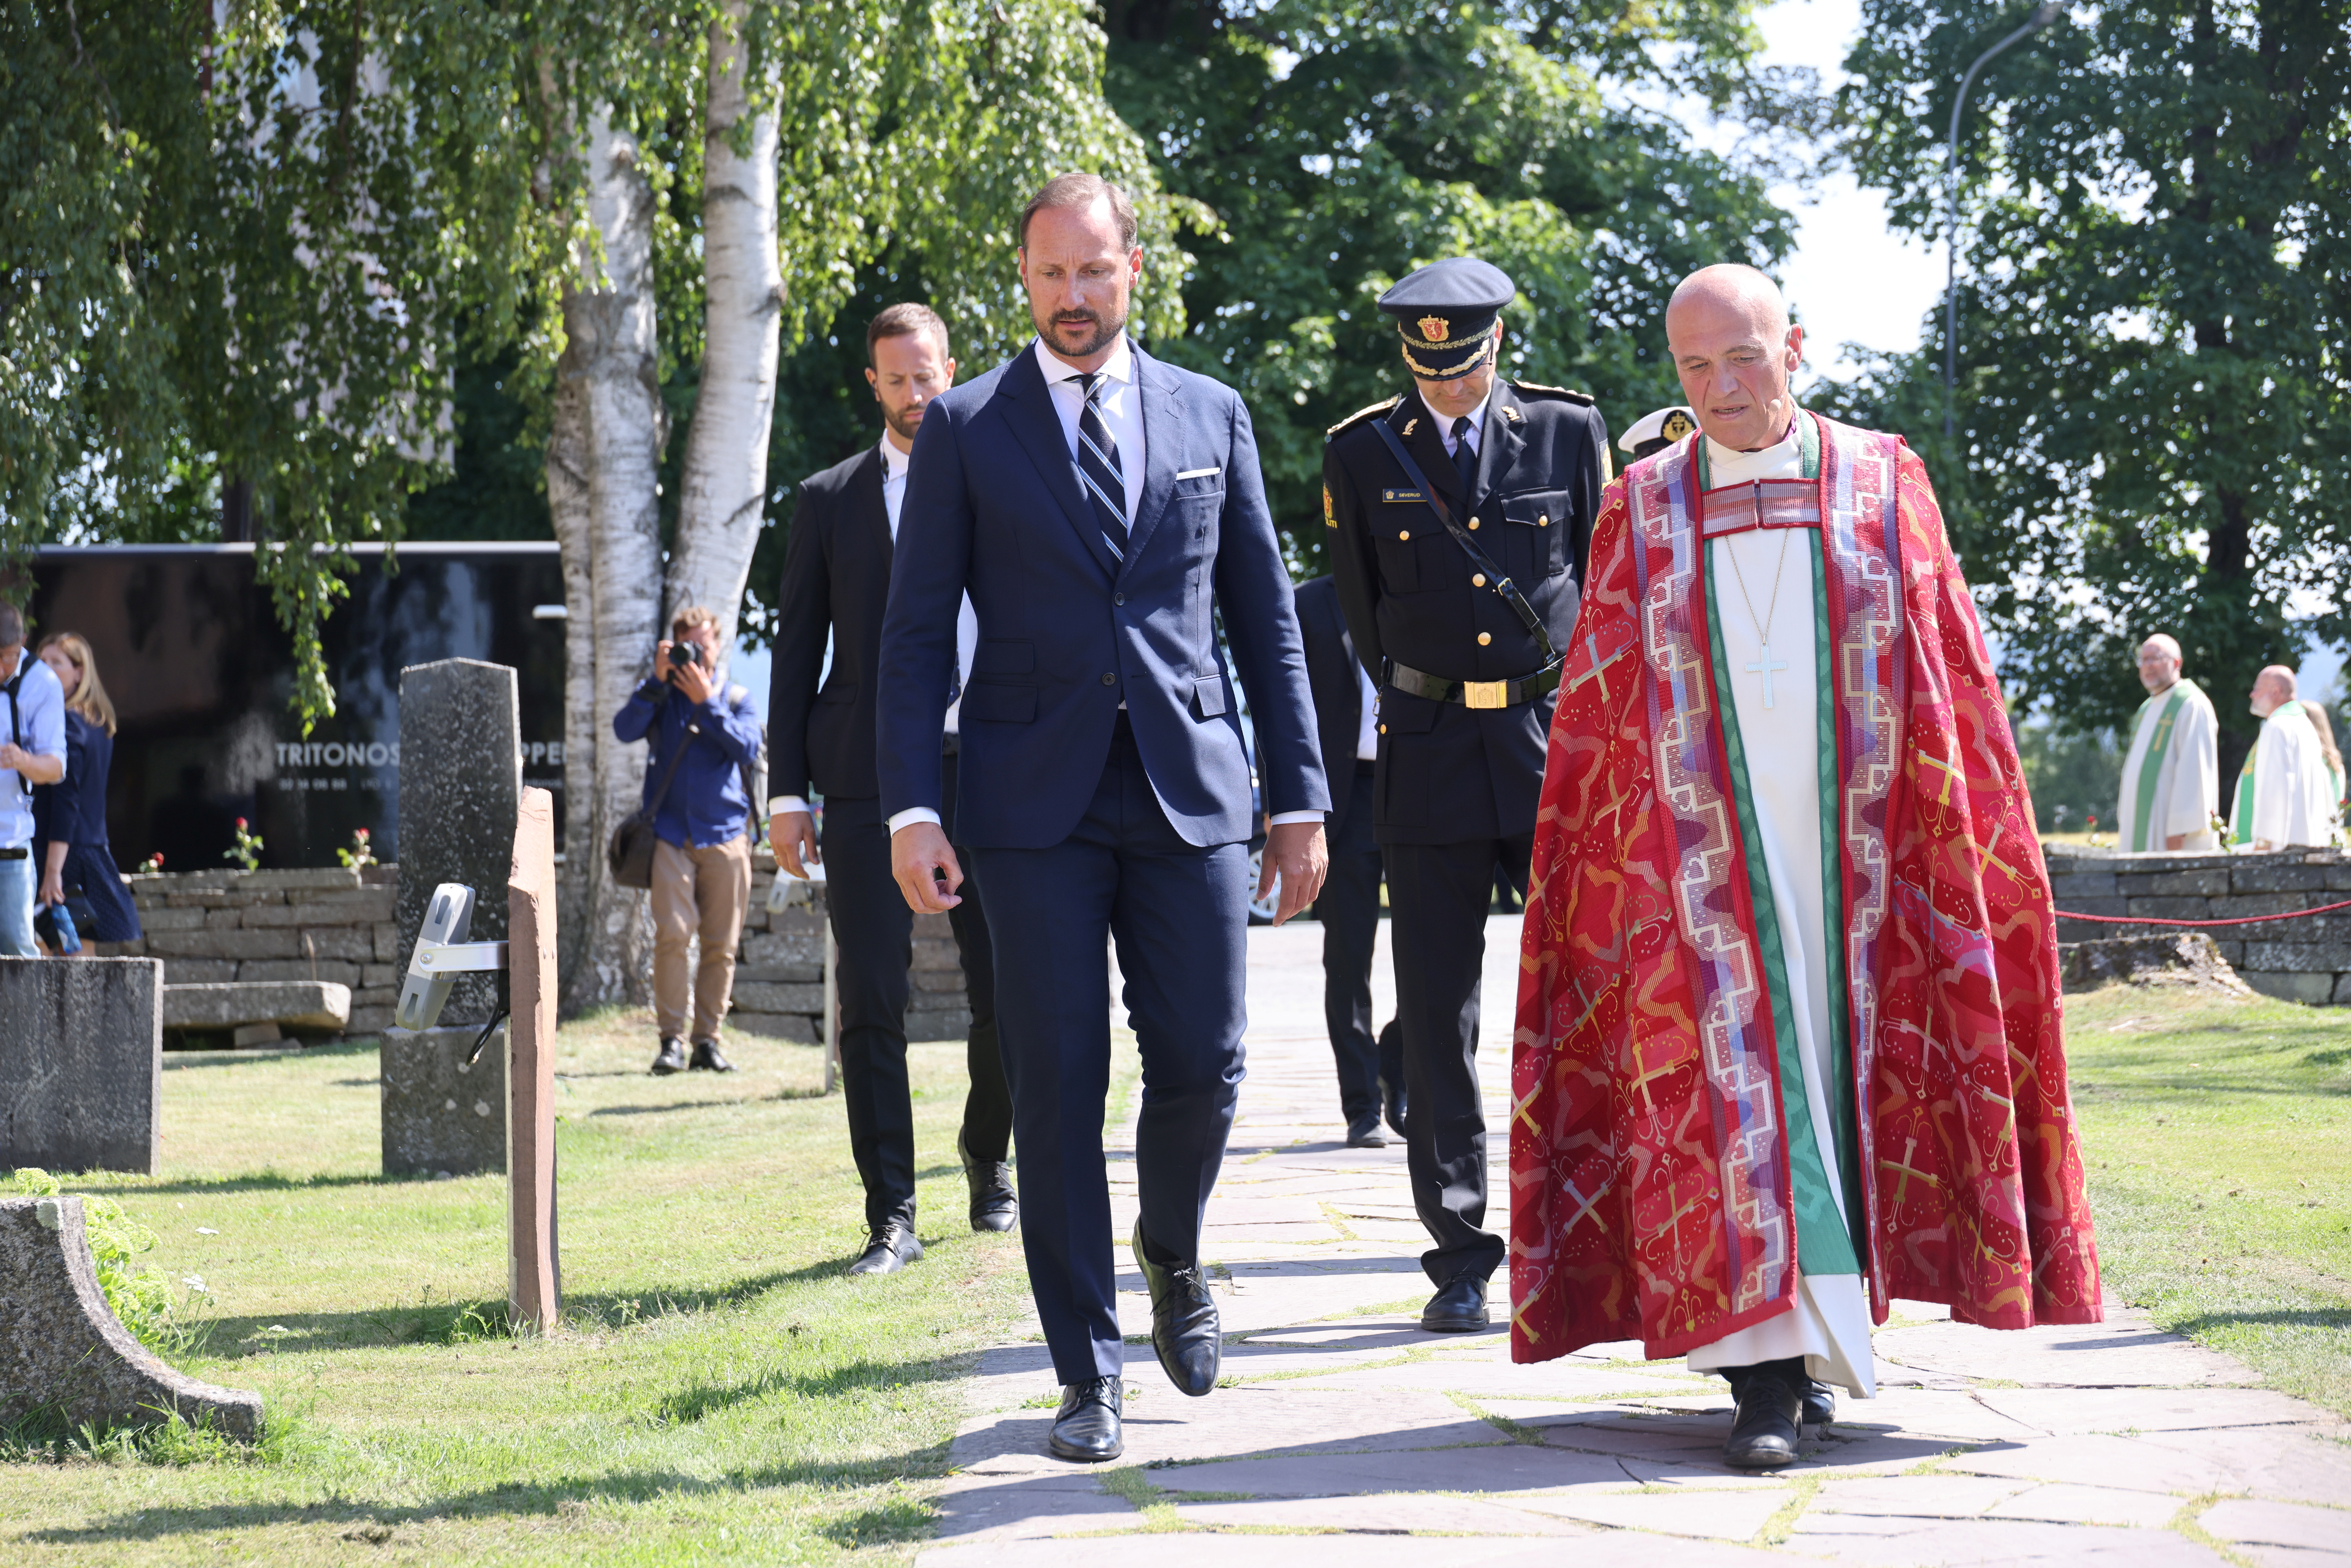 Norway's Crown Prince Haakon and bishop Jan Otto Myrseth walk as a memorial service takes place at Hole Church ten years after the Oslo and Utoeya island bomb attack, in Hole municipality, Norway, July 22, 2021. NTB/Geir Olsen/via REUTERS